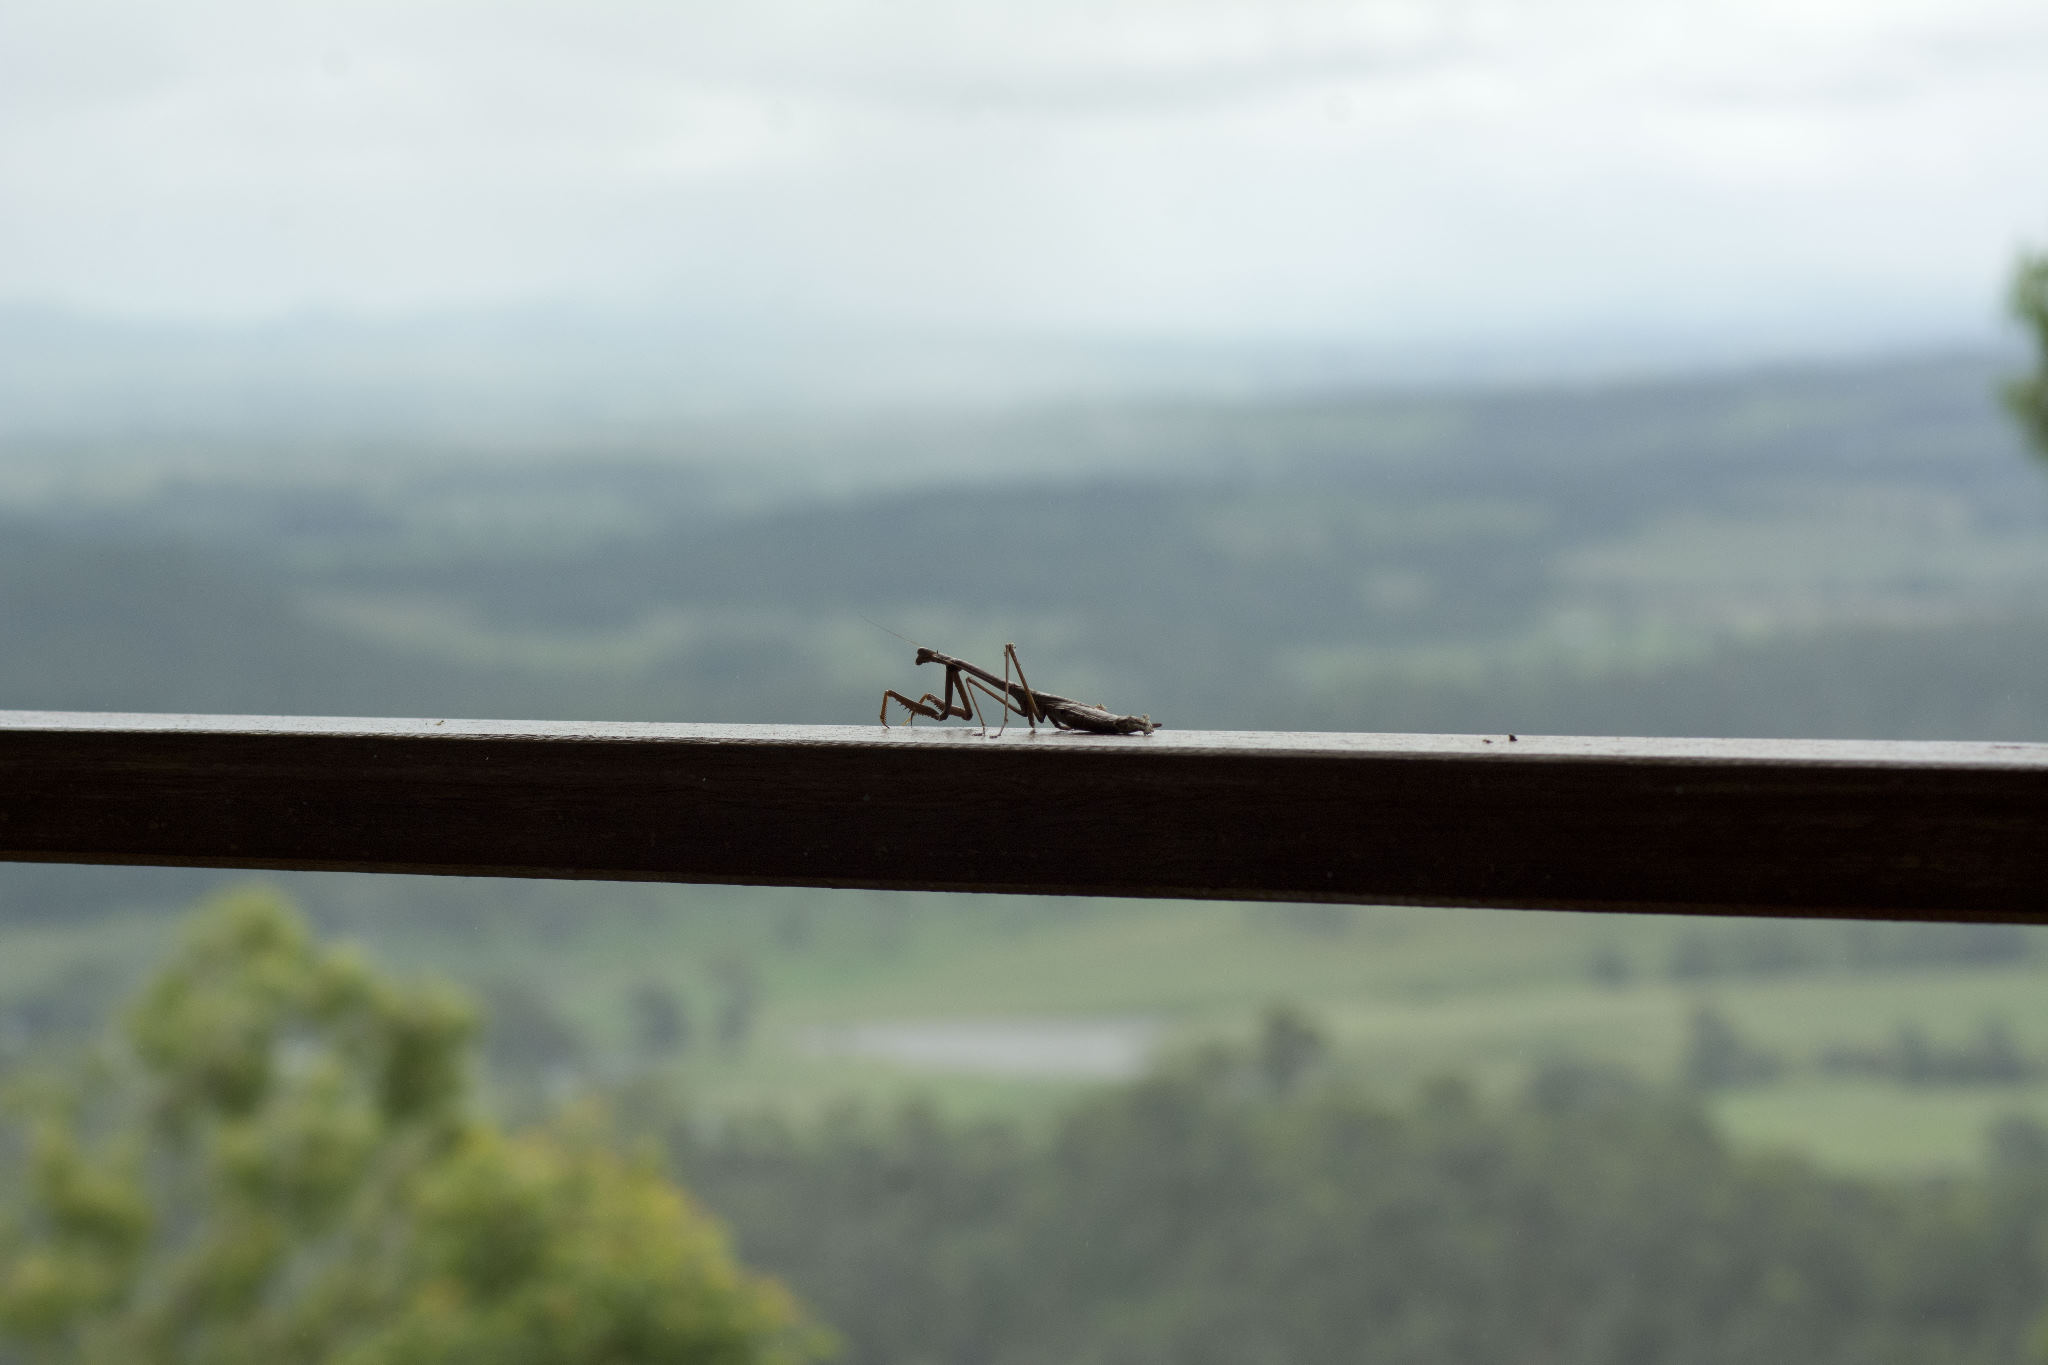 Praying Mantis with a view